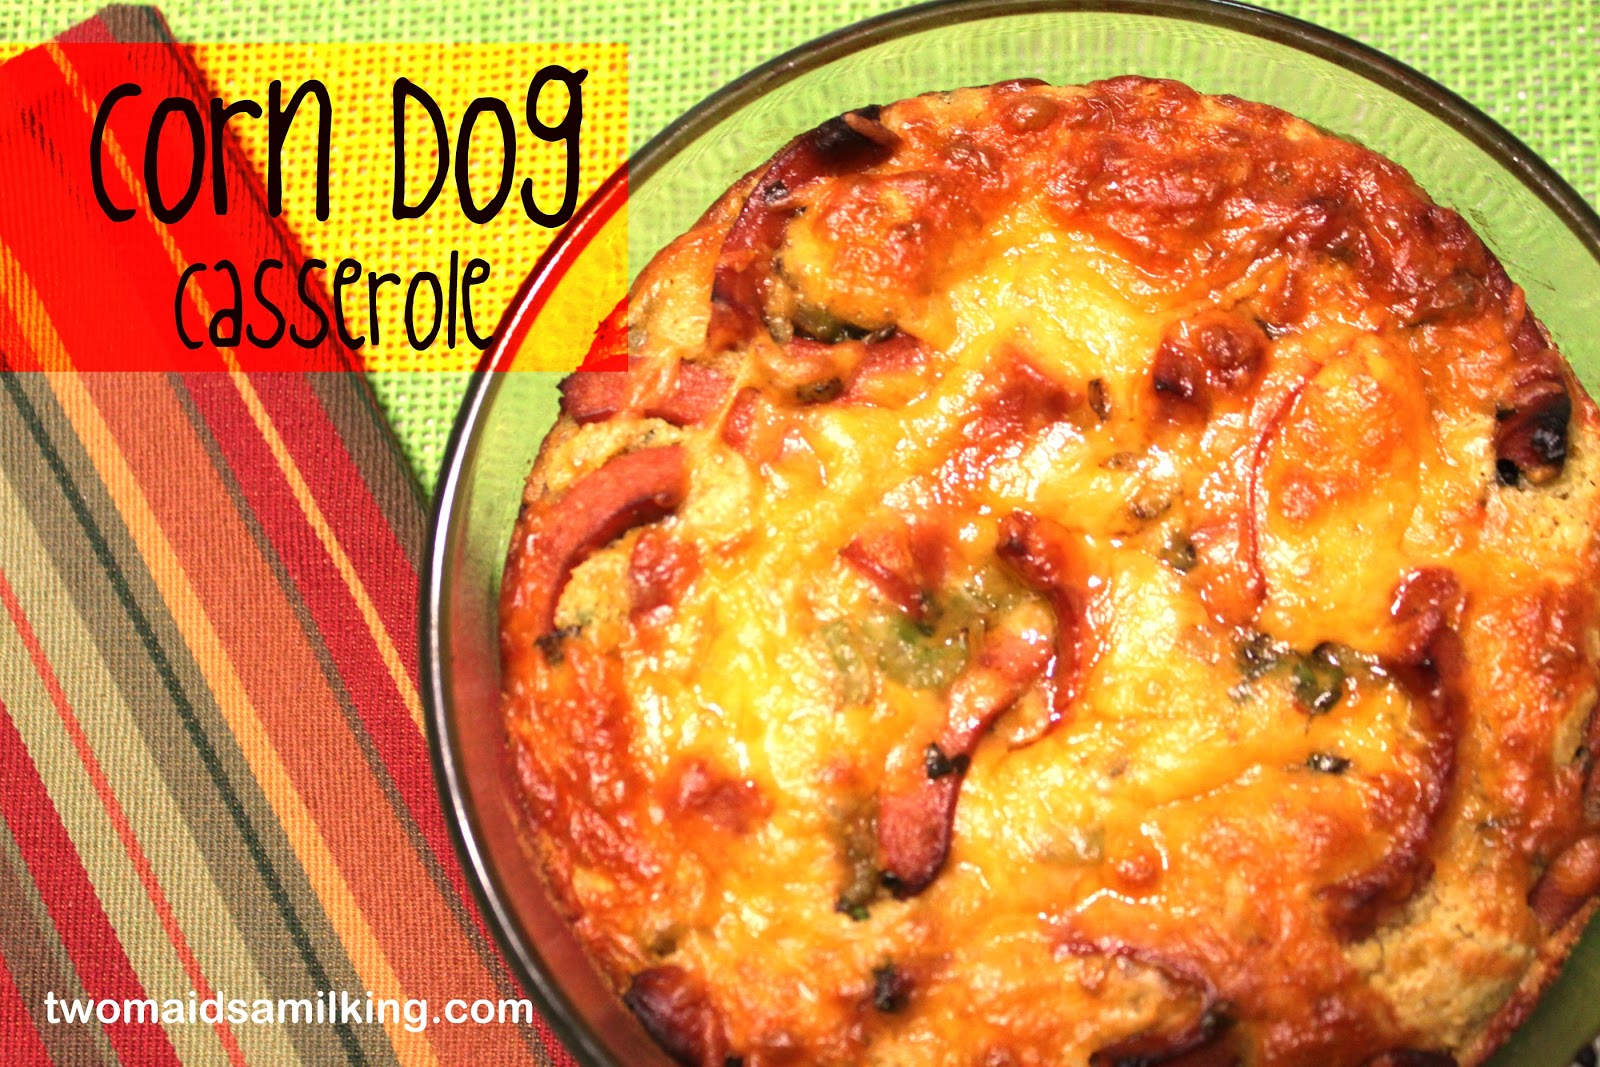 Corn Dog Casserole - Two Maids a Milking